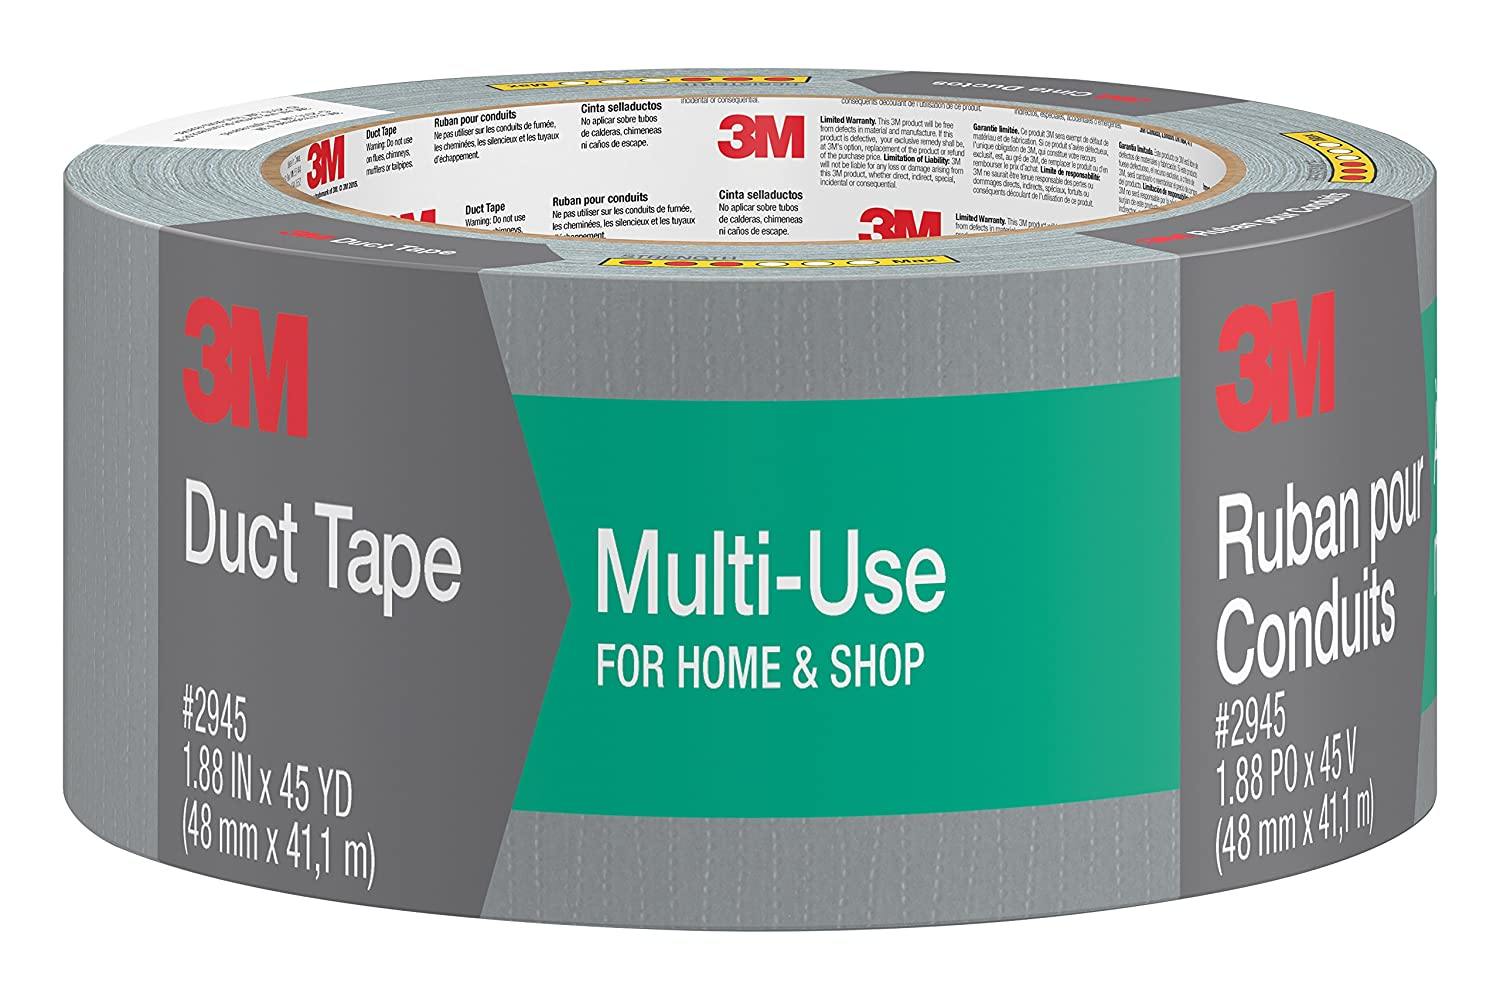 Voorkeur Amazon.com: 3M Multi-Use Duct Tape, 2945-C, 1.88 Inches by 45 DM16